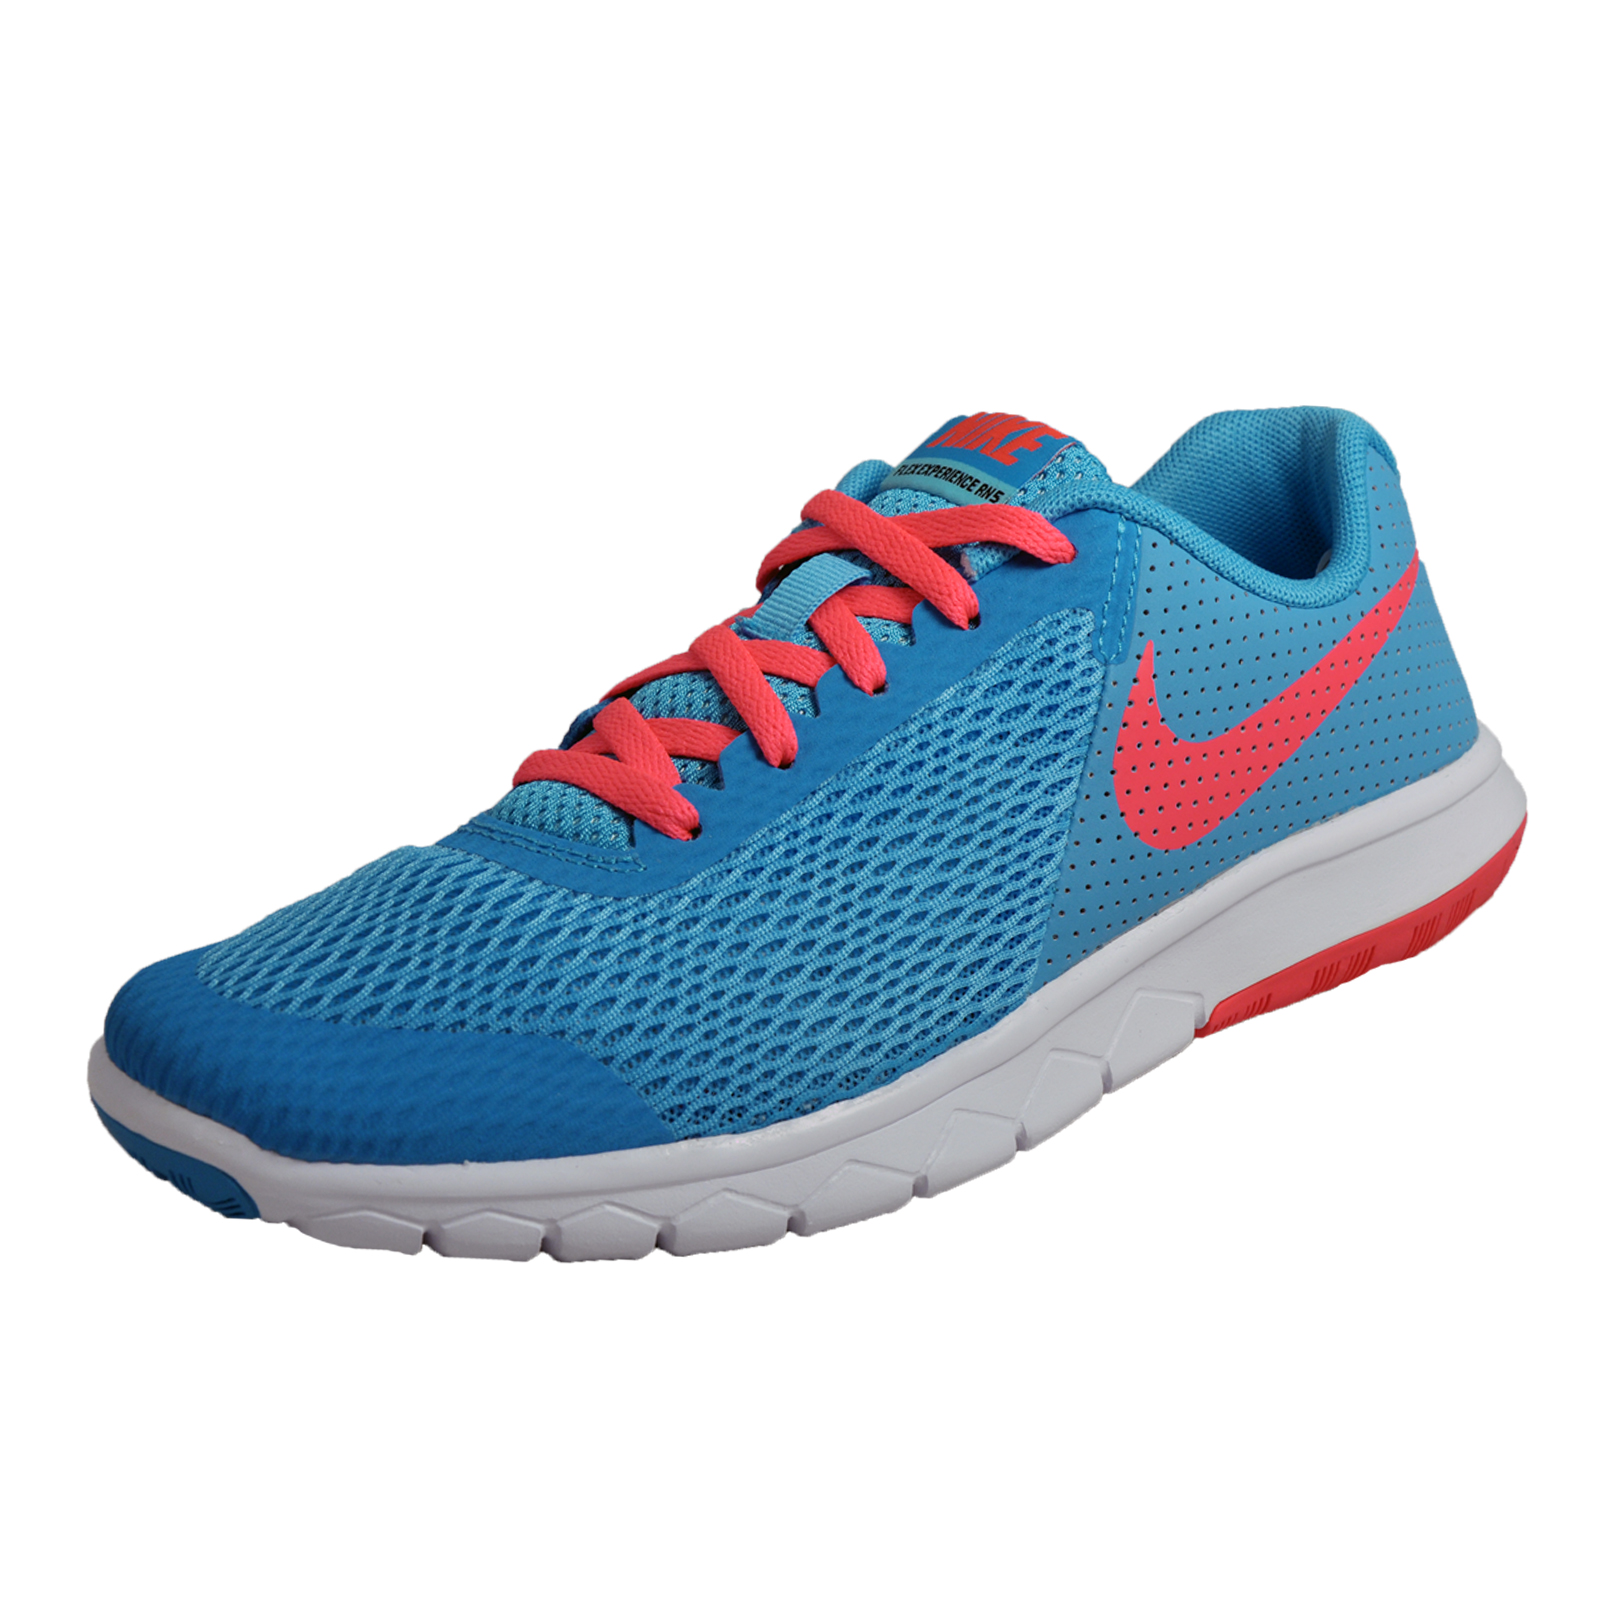 192385722510 Details about Nike Flex Experience 5 Womens Girls Running Shoes Fitness Gym  Trainers Blue